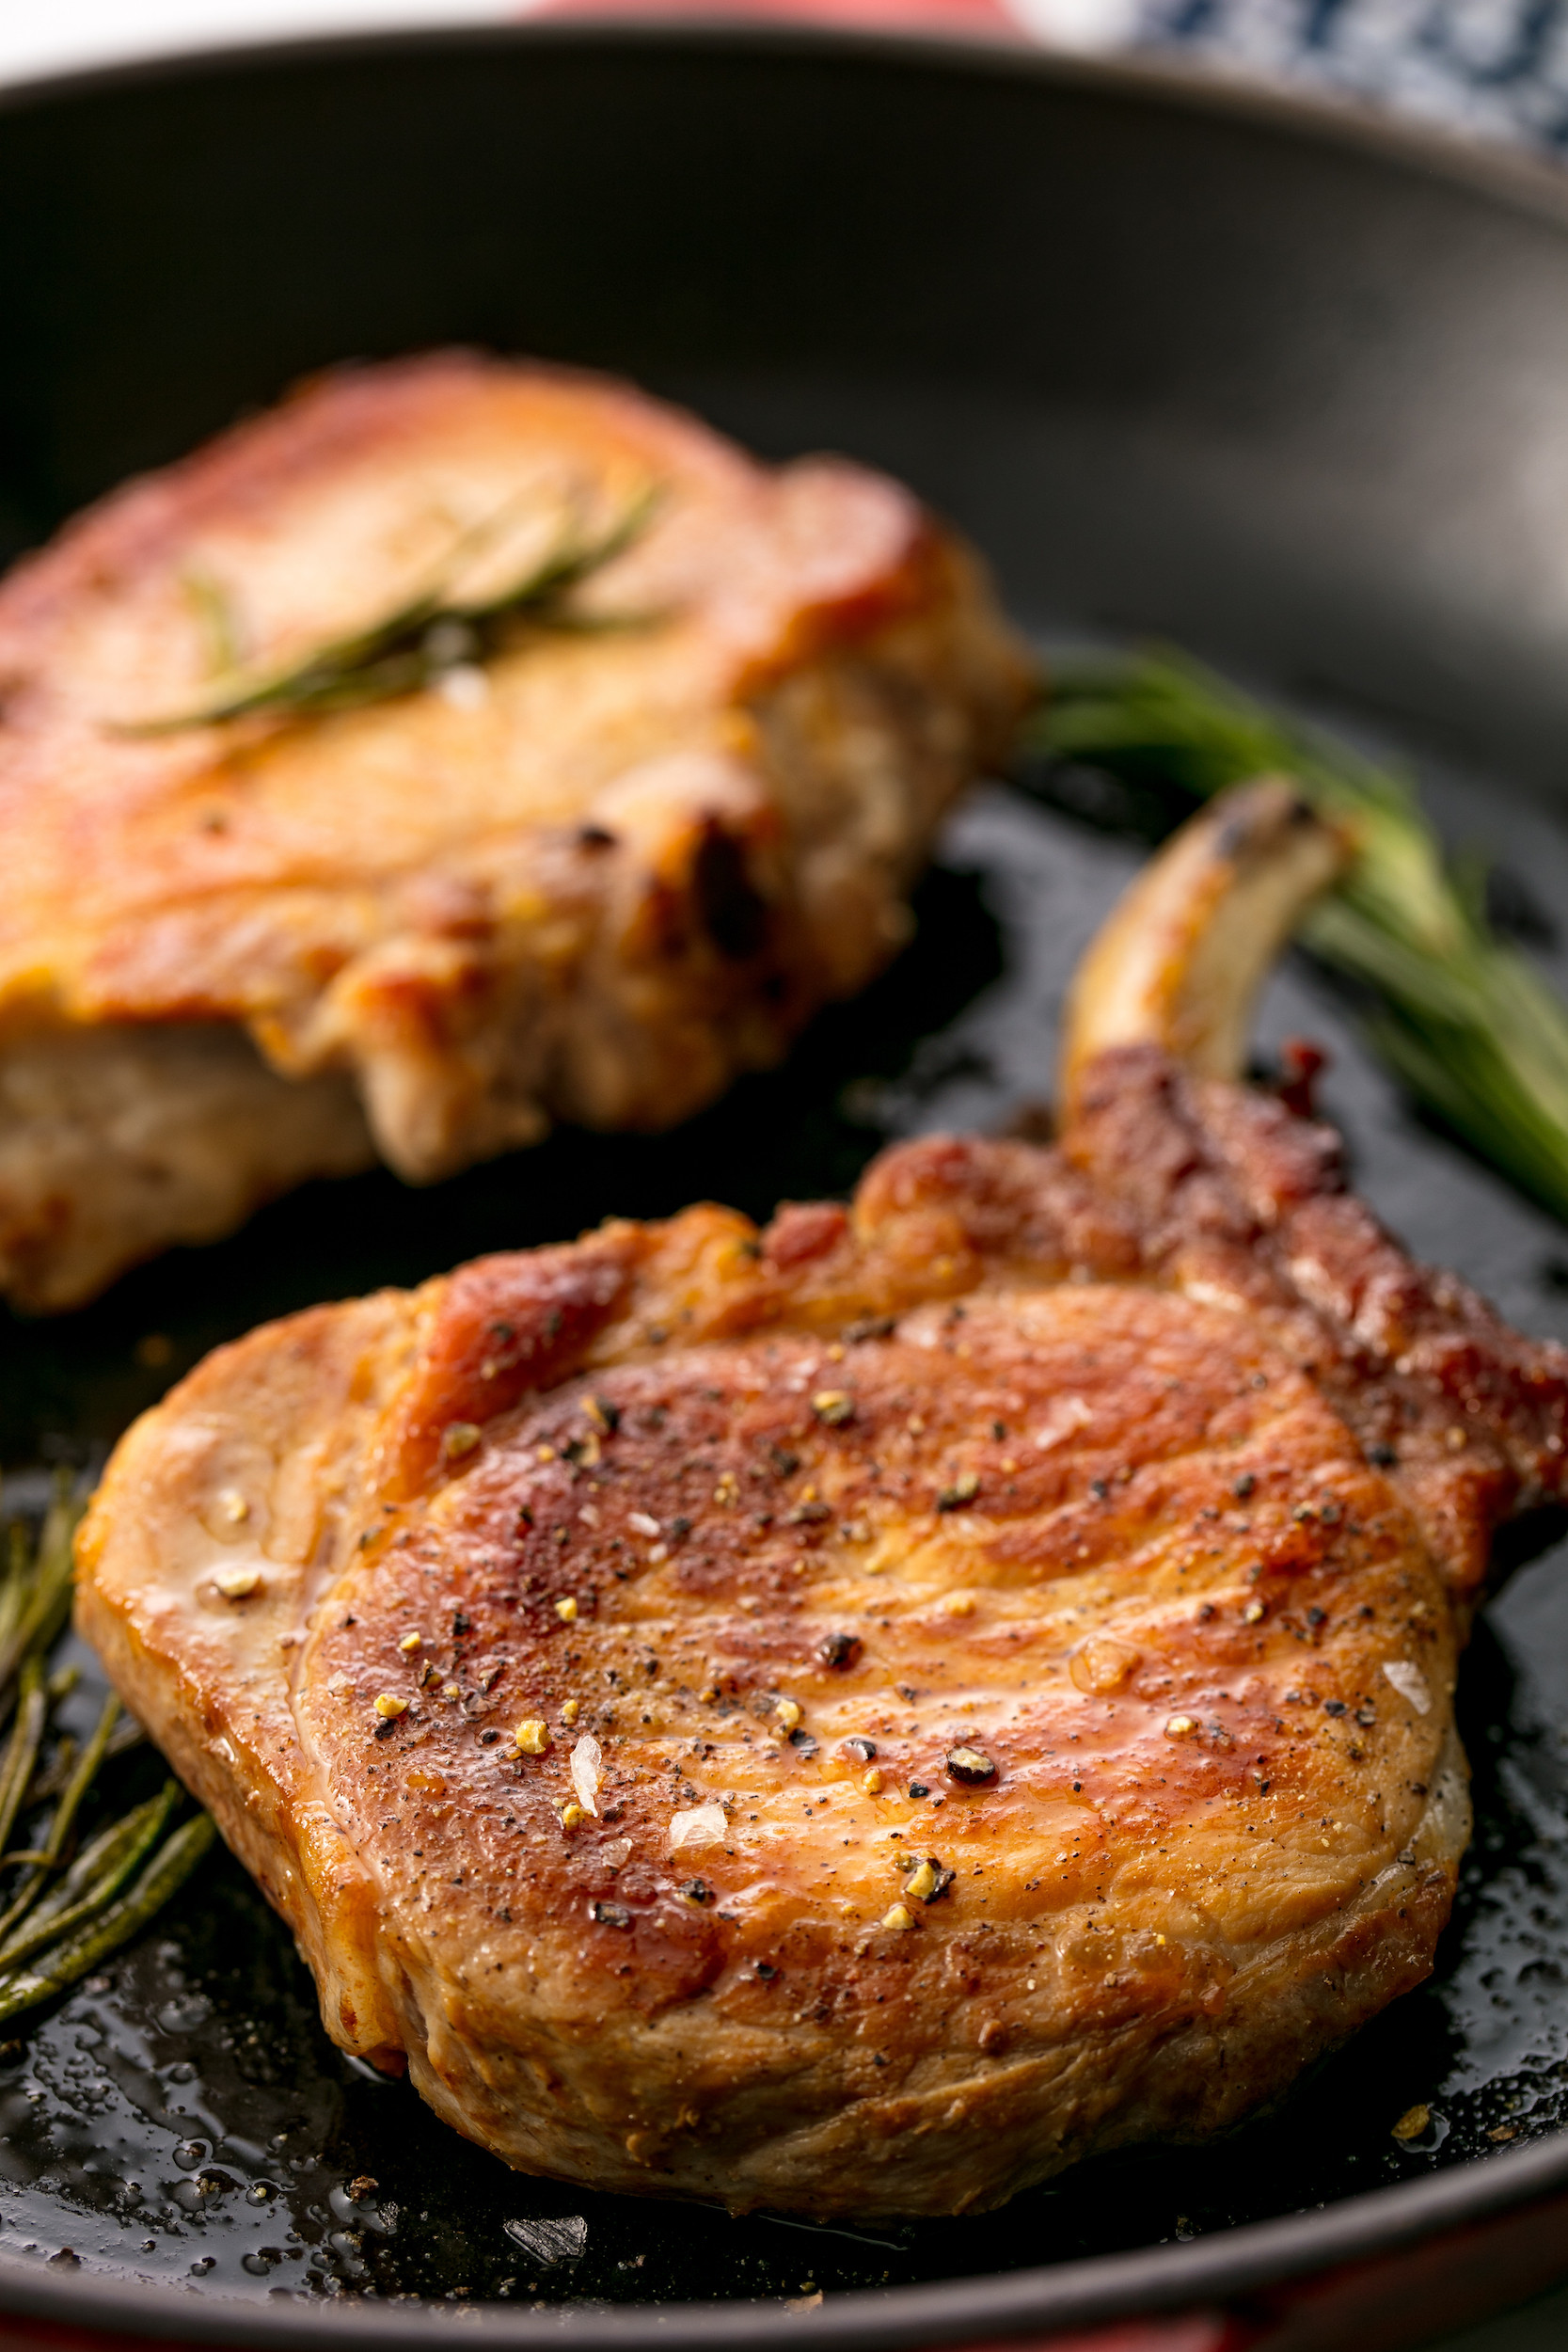 What To Do With Pork Chops  20 Best Pork Chop Recipes How To Cook Pork Chops—Delish